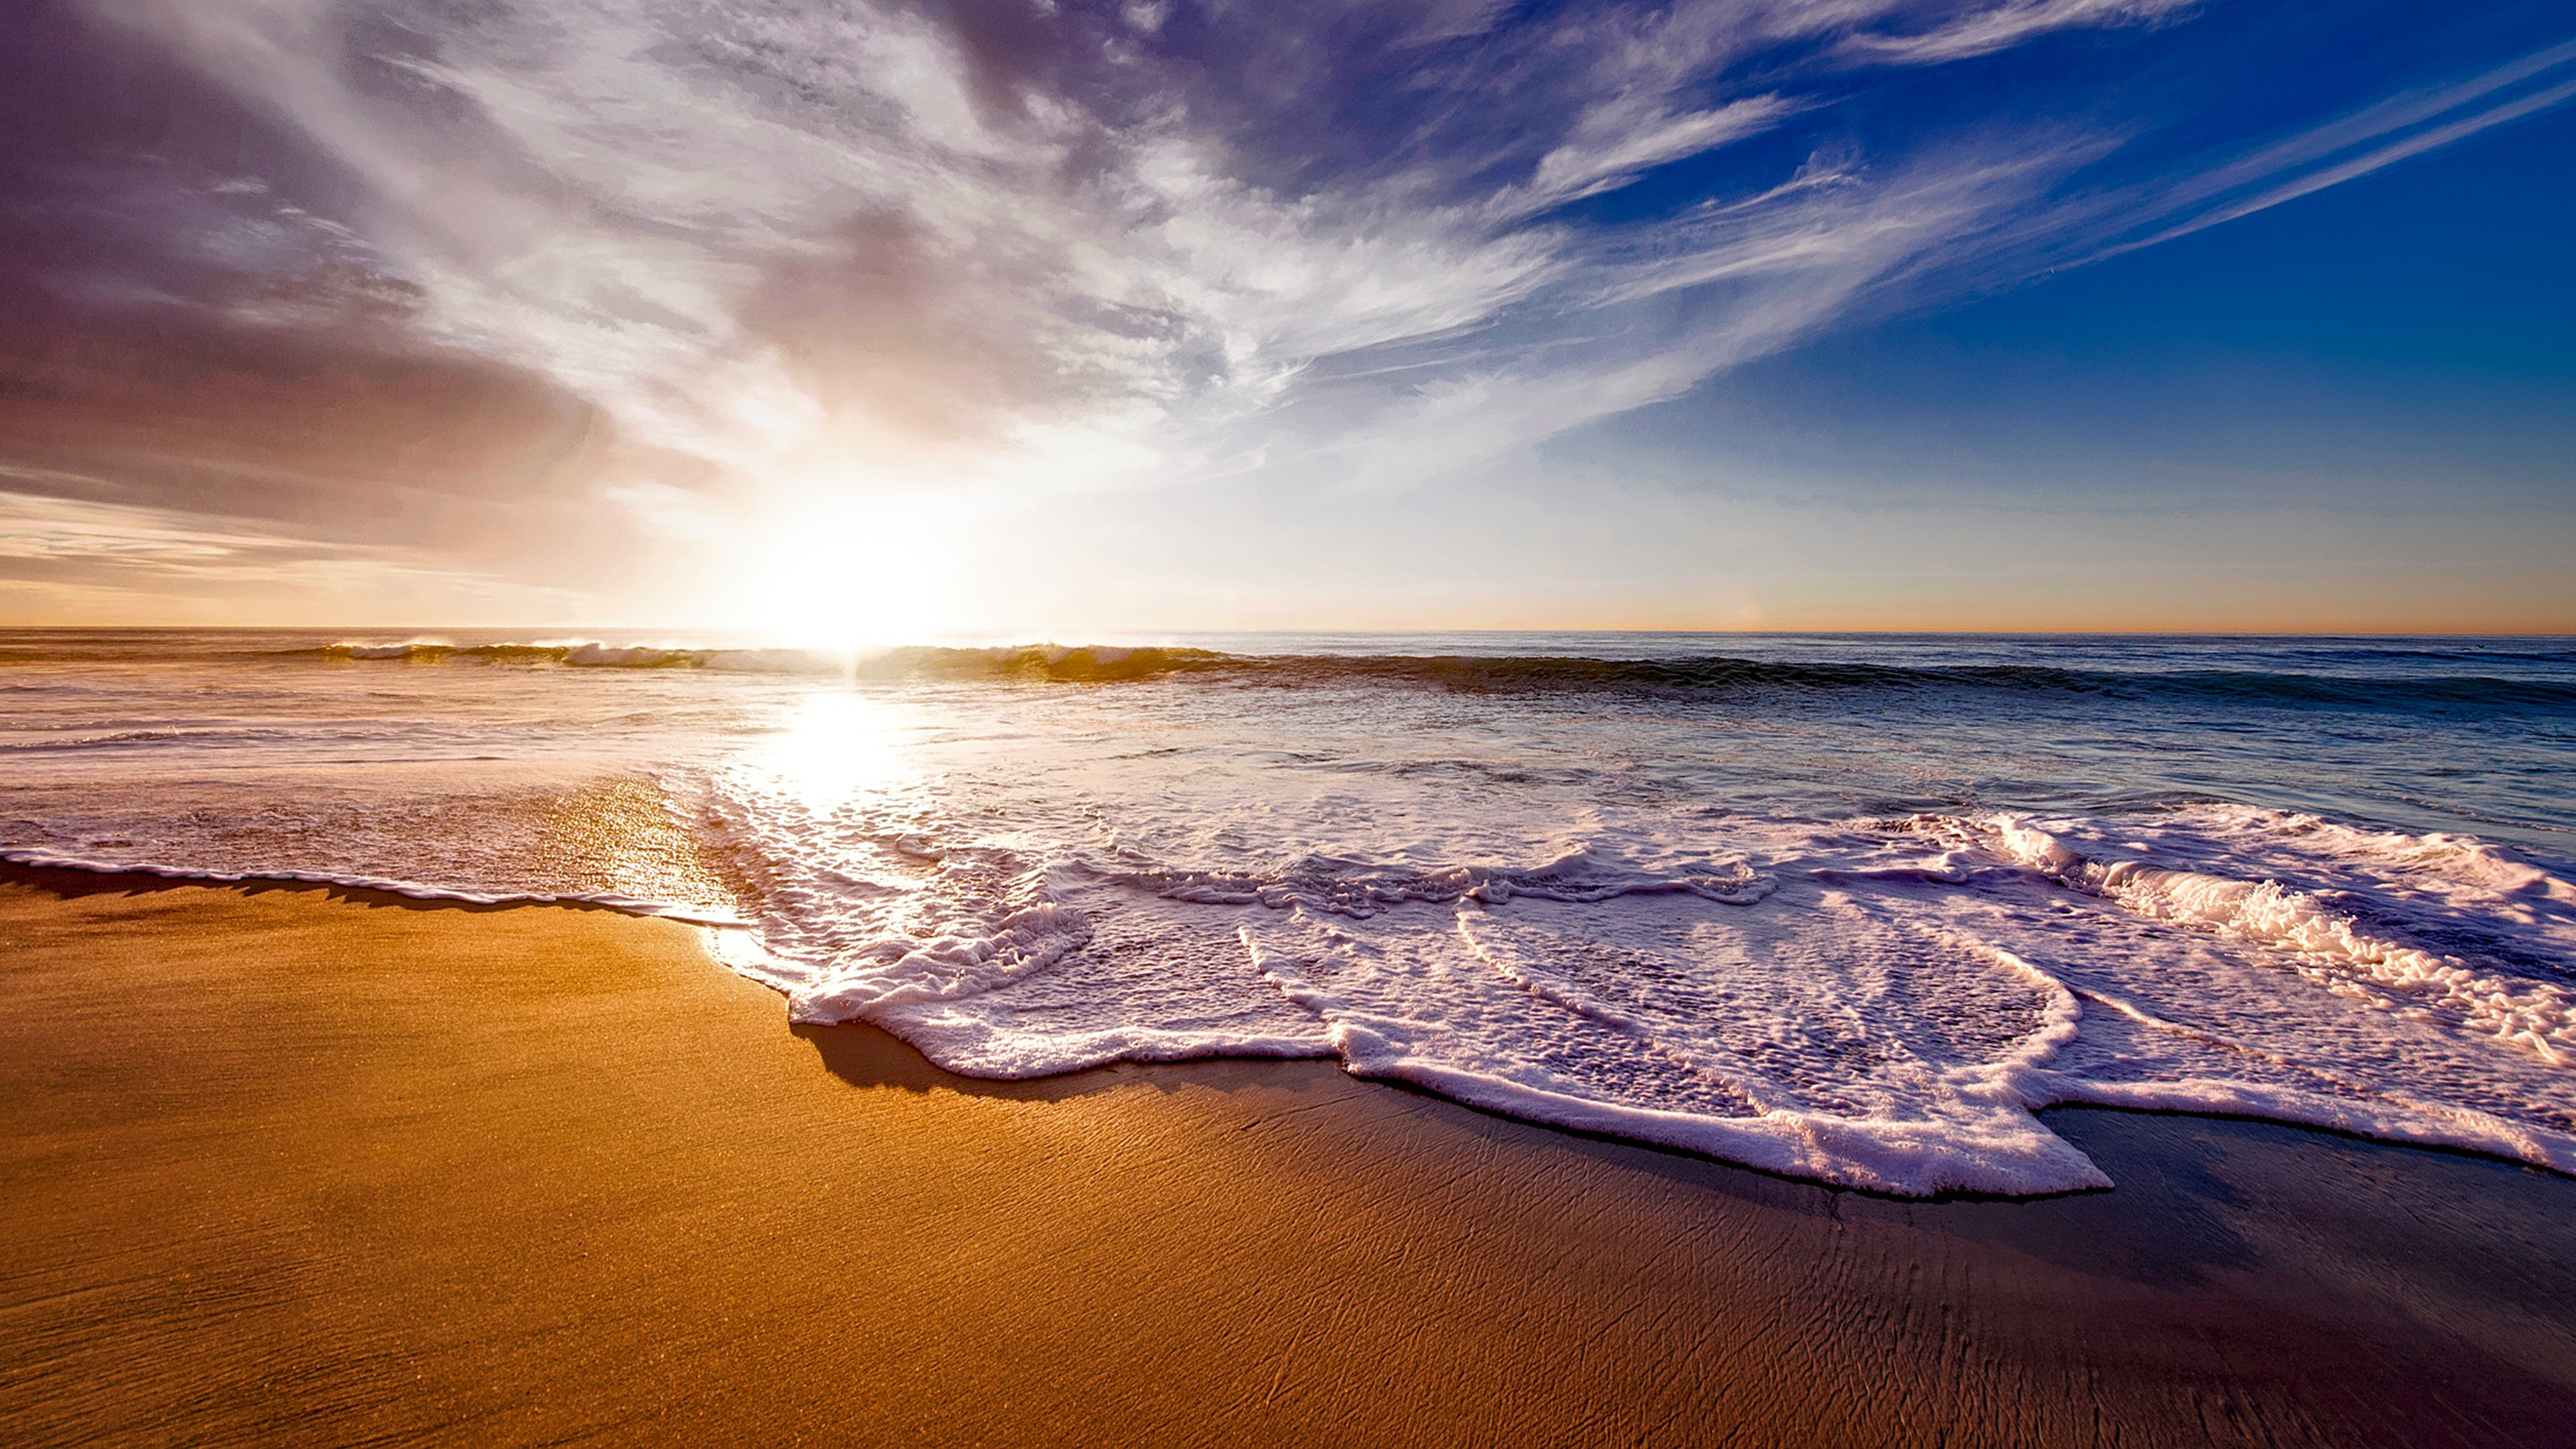 California Beach 4K Wallpaper Download